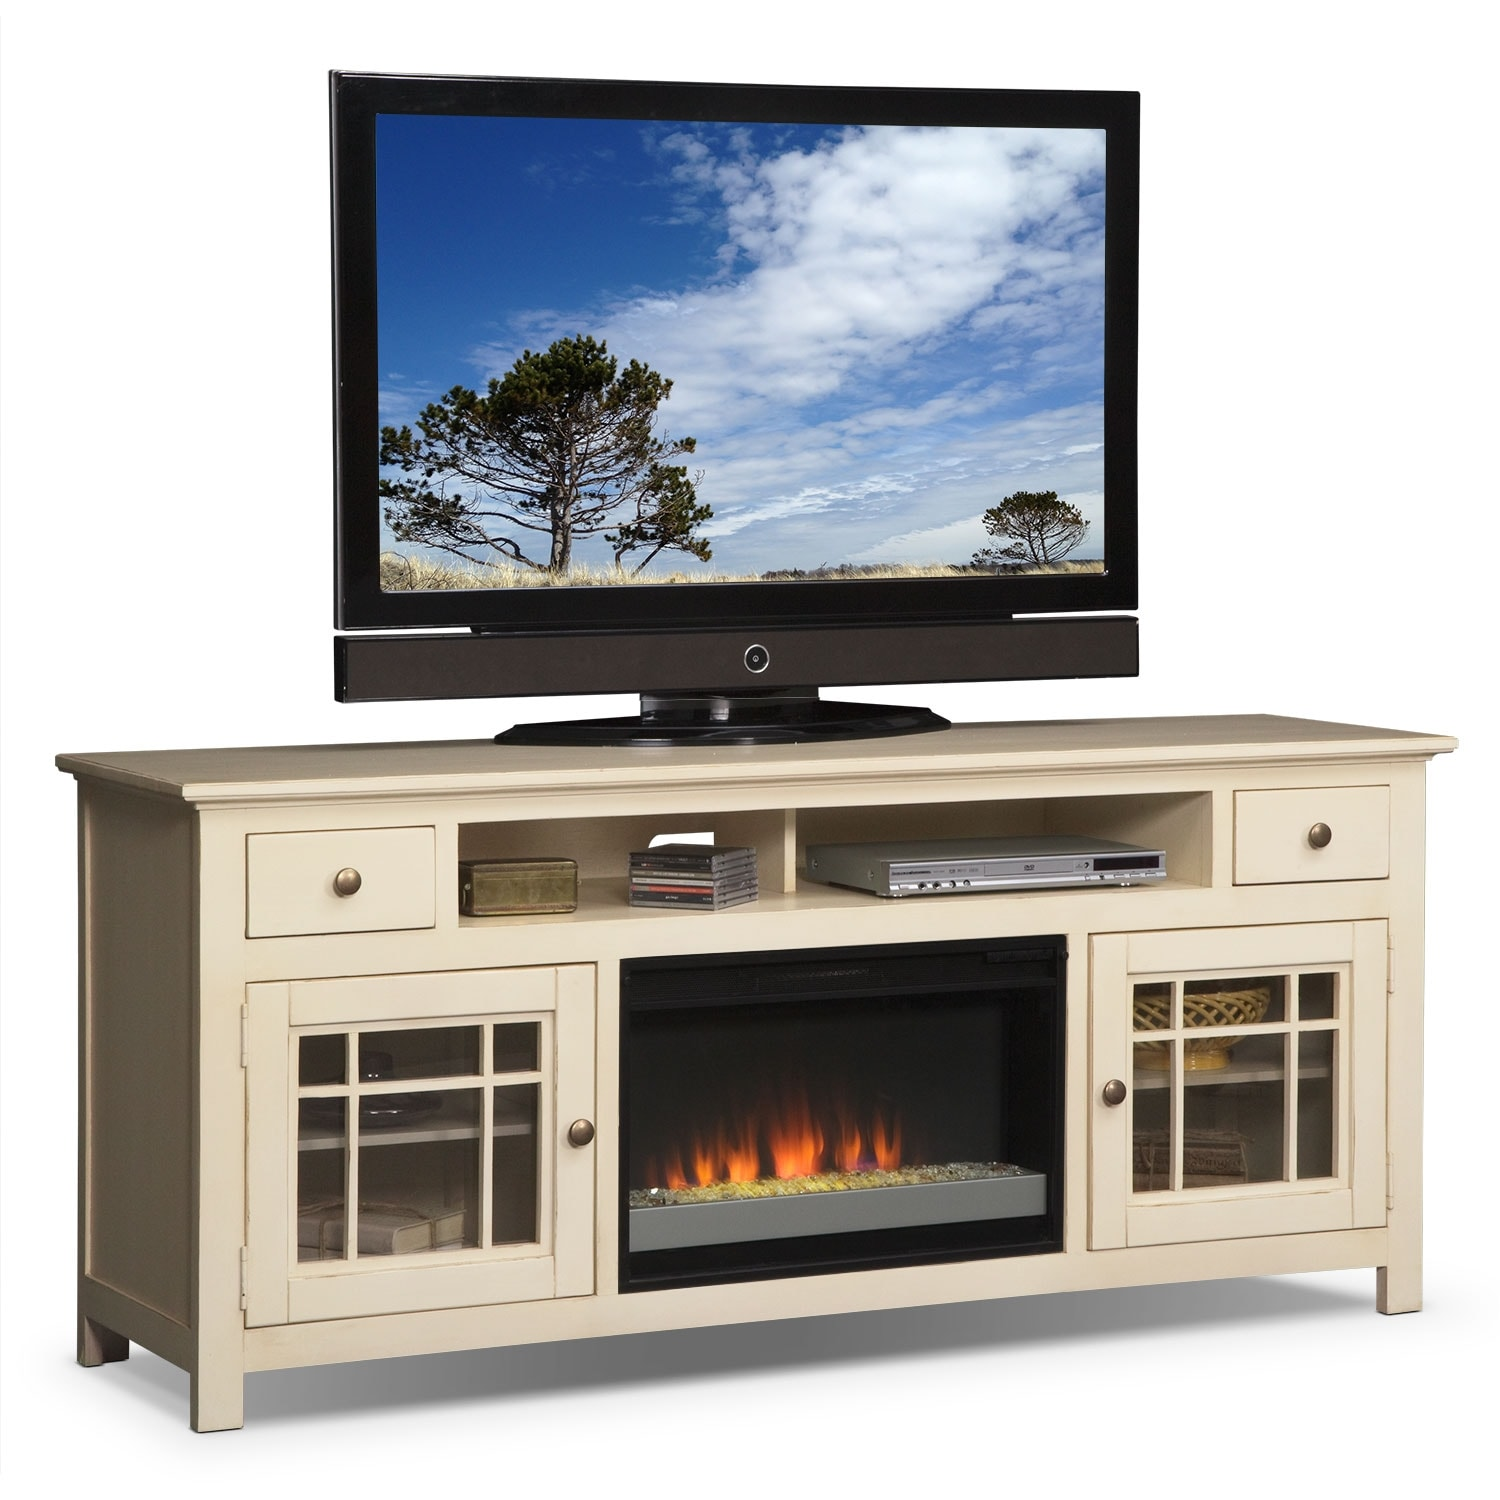 "Merrick 74"" Fireplace TV Stand with Contemporary Insert - White"